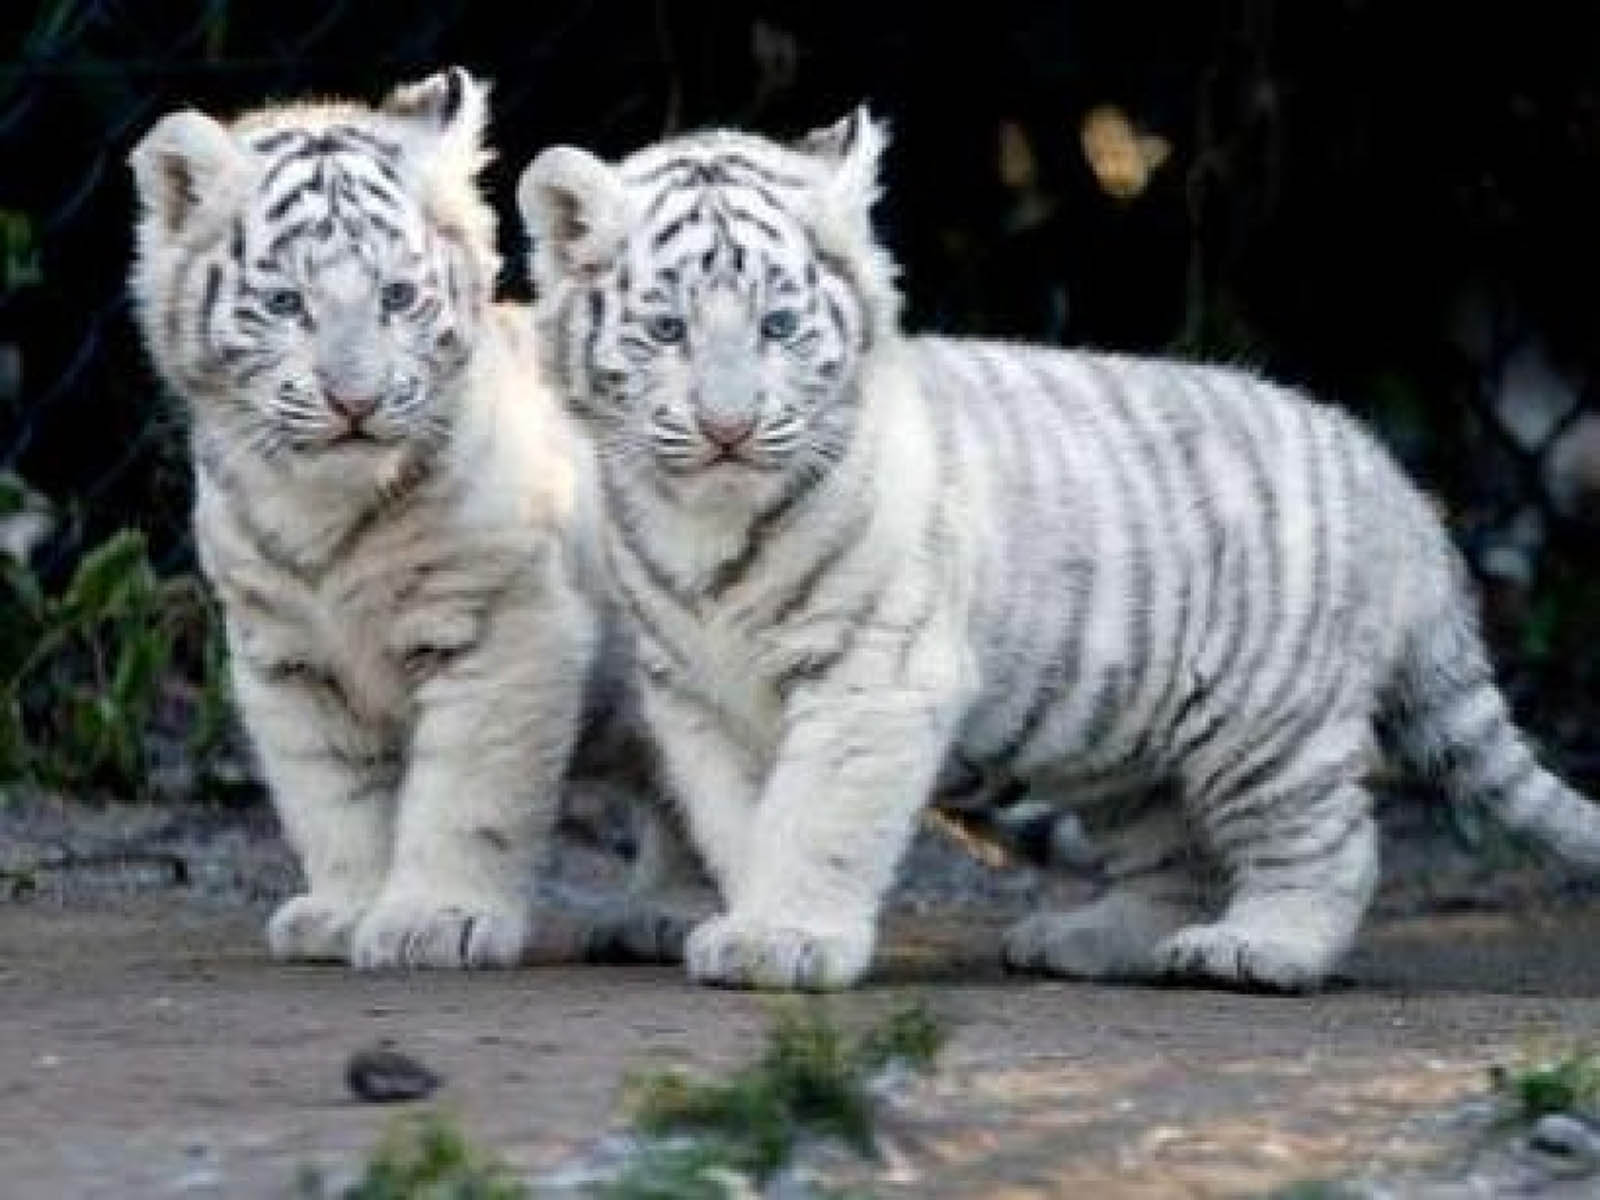 Baby White Tigers Wallpapers   2013 Wallpapers 1600x1200